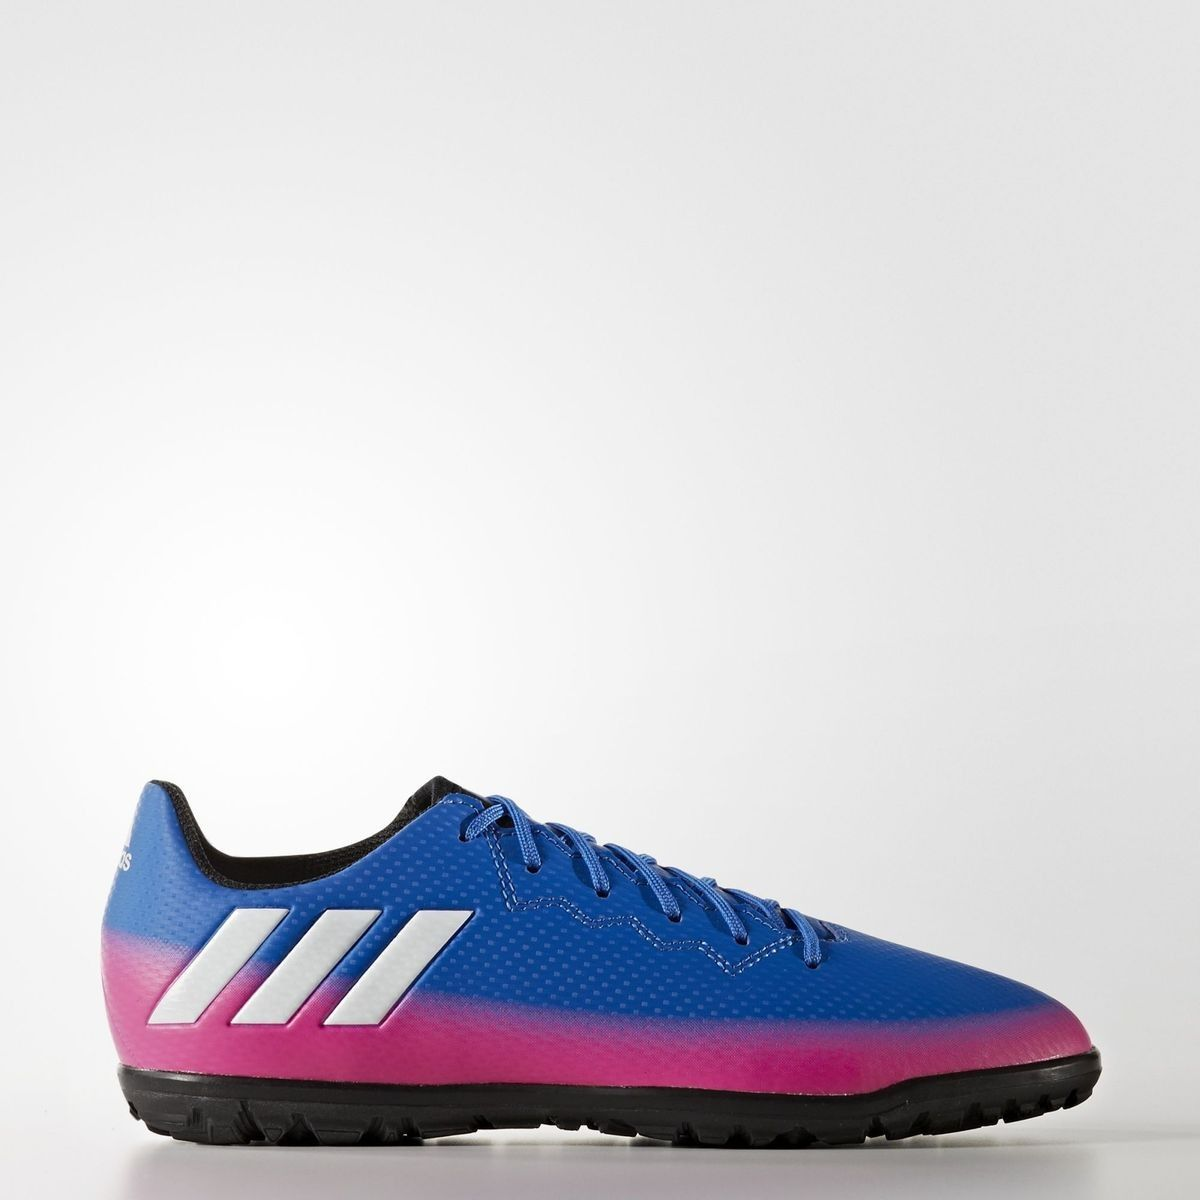 Chaussure Messi 16.3 Turf Taille : 38 | Chaussure sport